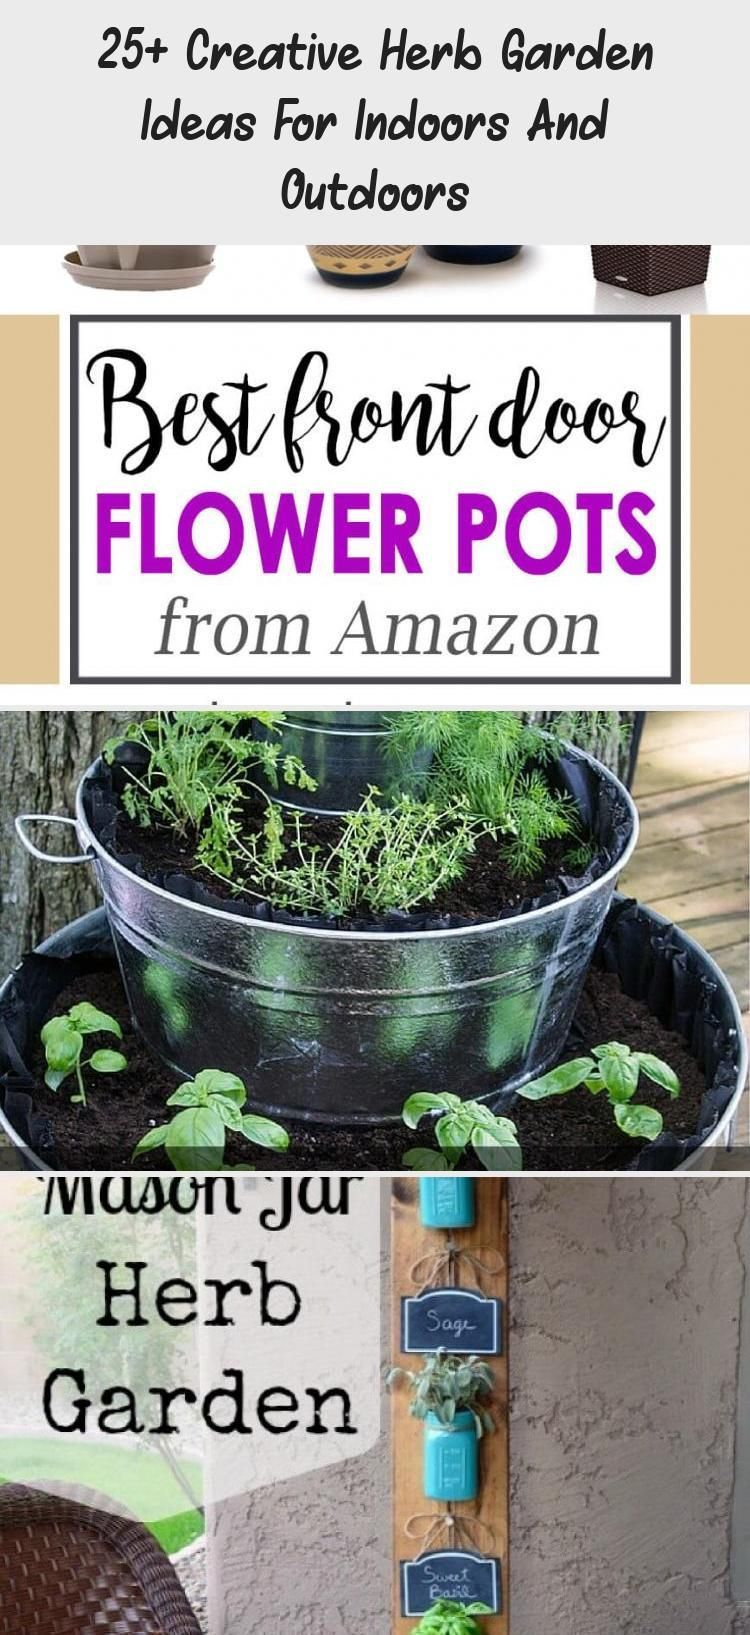 25 Creative Herb Garden Ideas For Indoors And Outdoors Decor